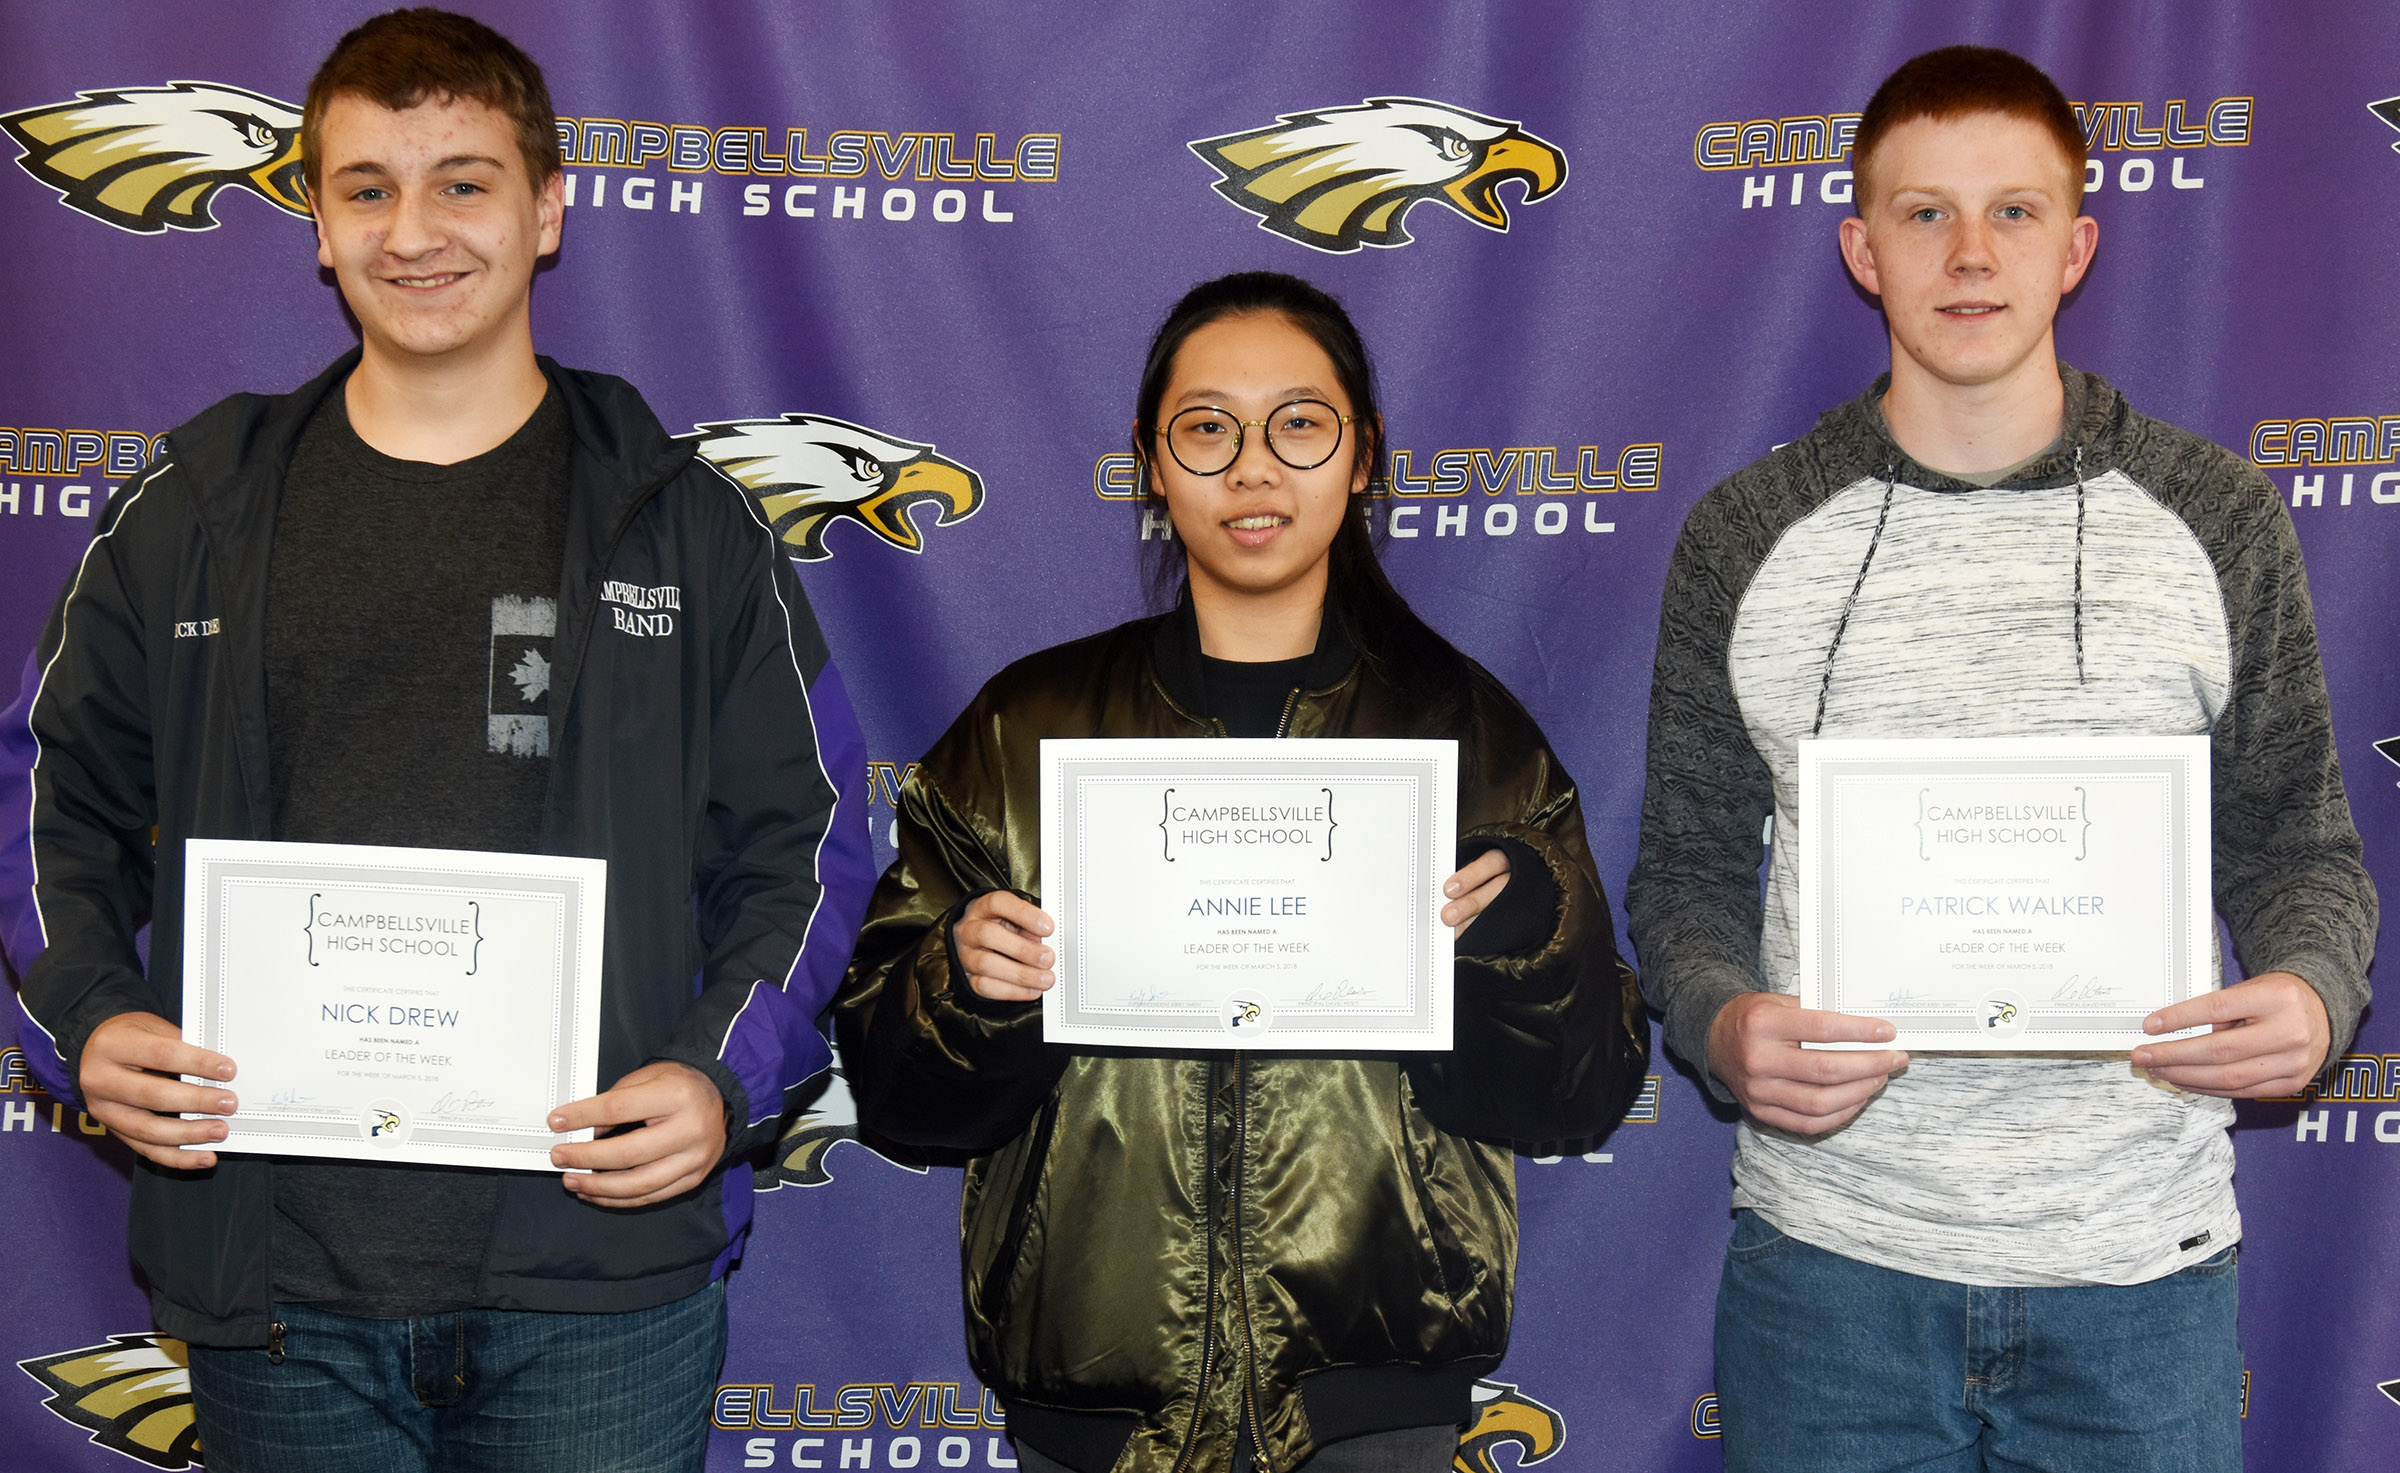 From left are freshman Nick Drew, junior Annie Lee and sophomore Patrick Walker. Absent from the photo is senior Makala Antle.